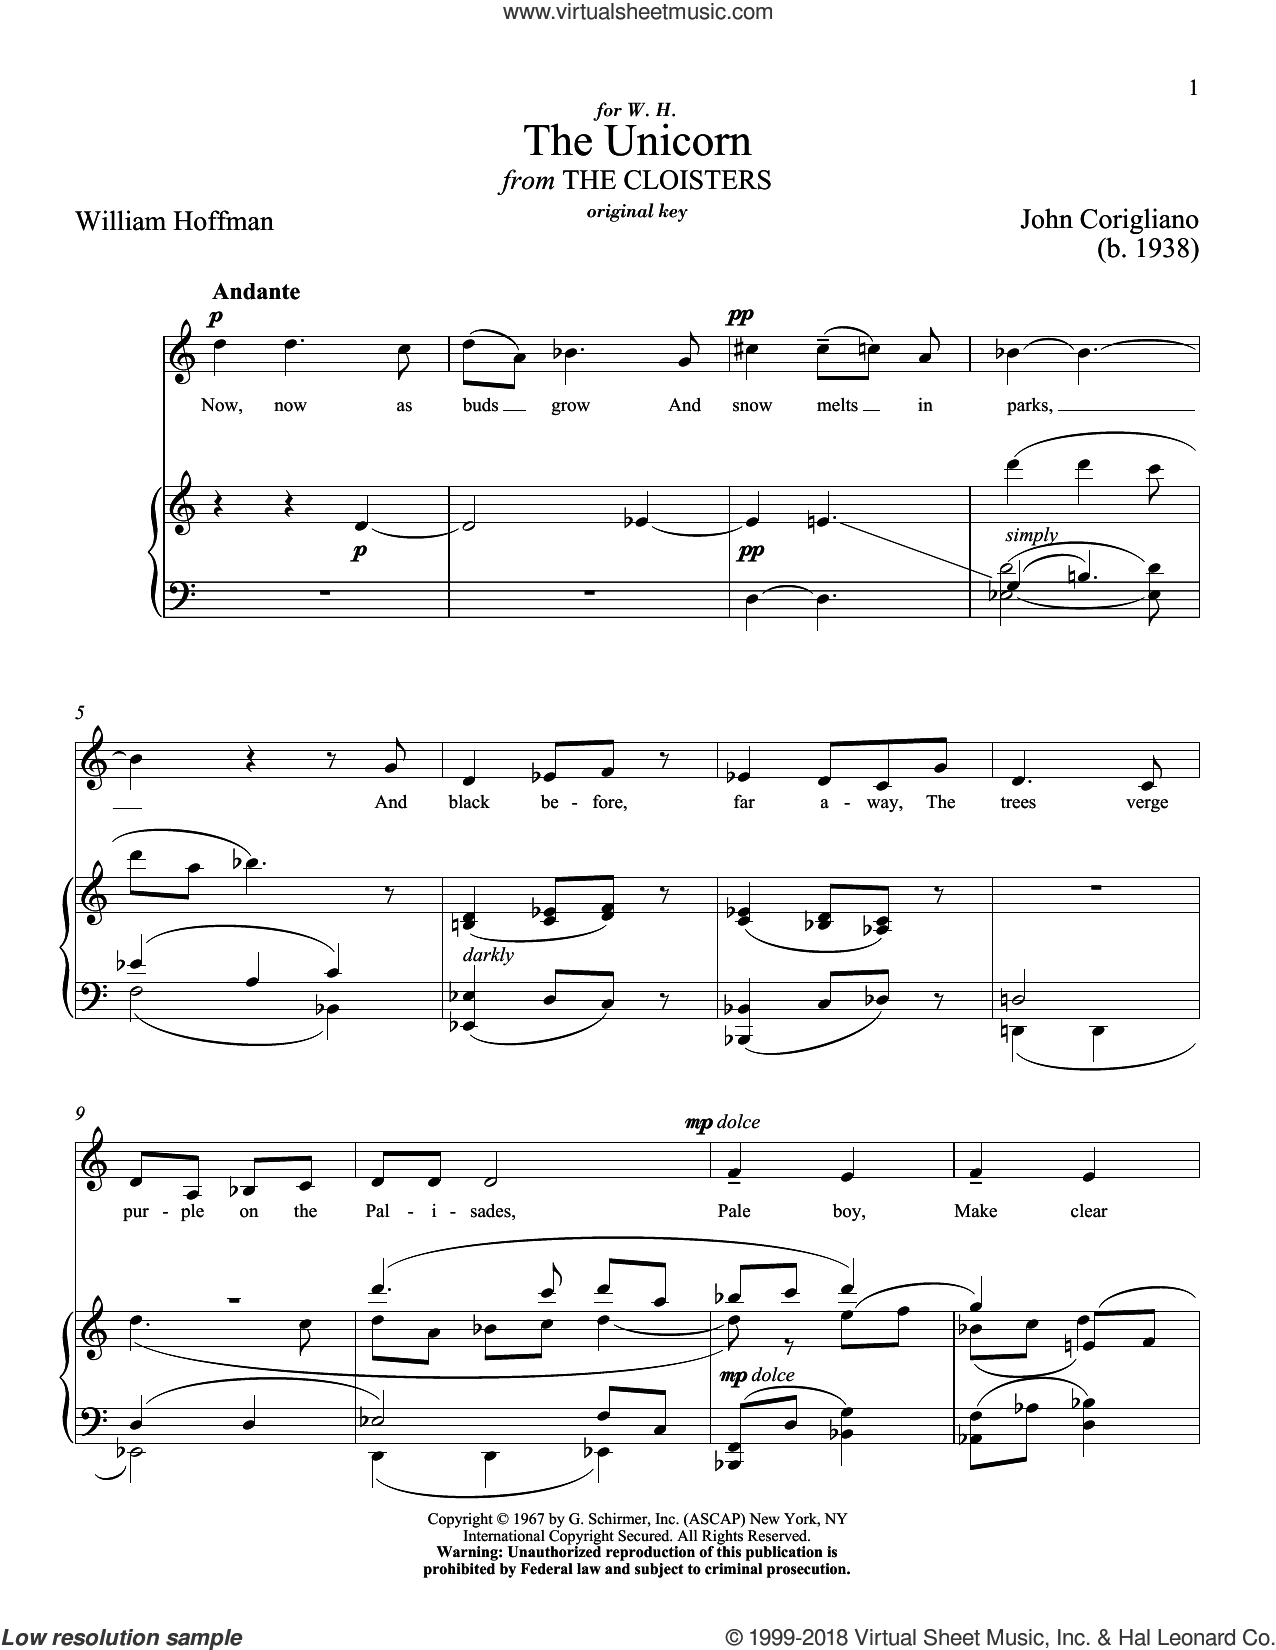 The Unicorn sheet music for voice and piano (High Voice) by John Corigliano, Richard Walters and William Hoffman, classical score, intermediate skill level